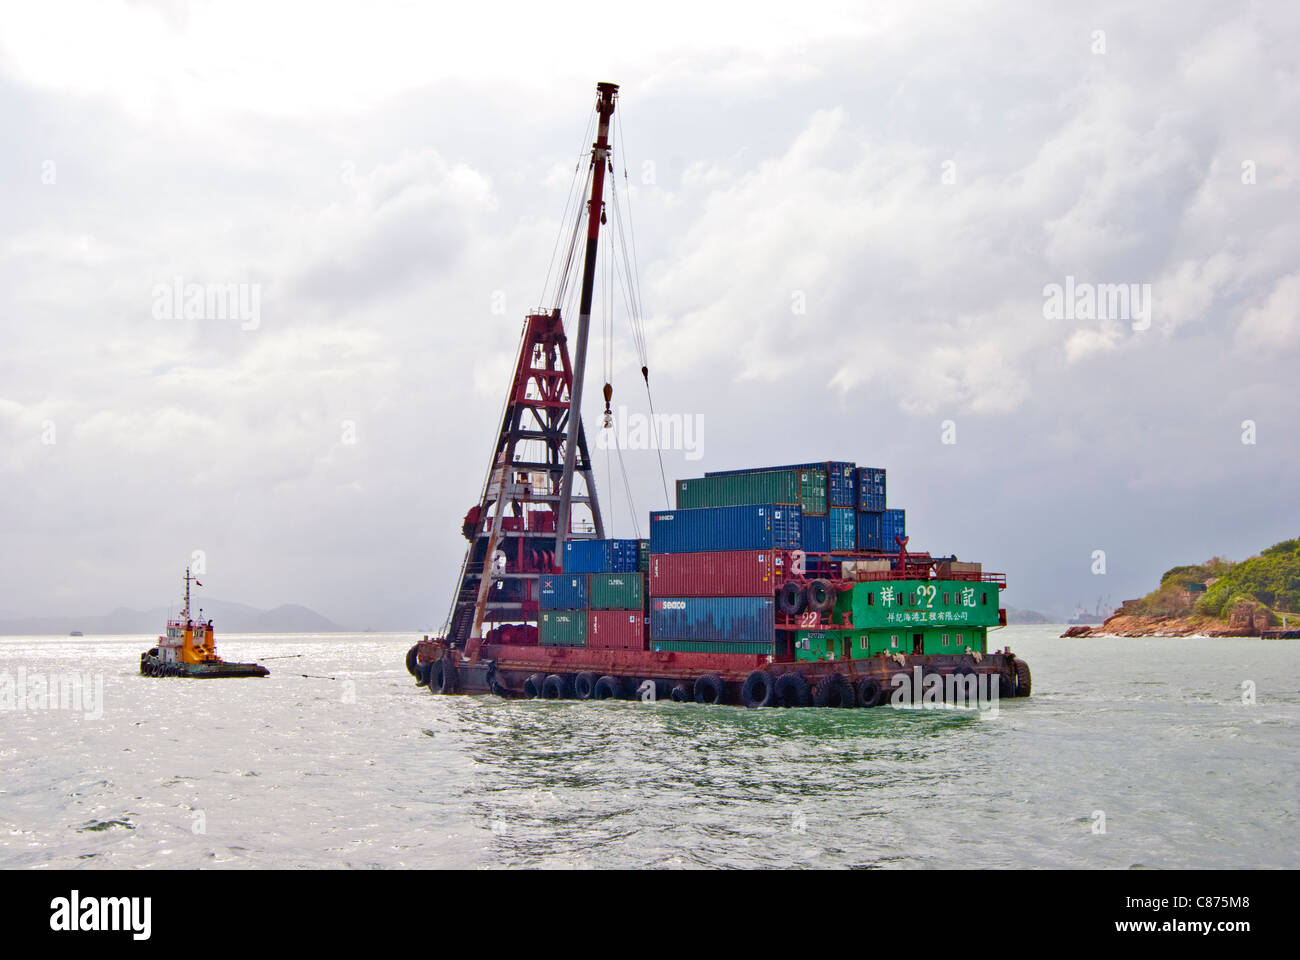 Container Transfer Barge with tug, Victoria Harbour, Hong Kong - Stock Image